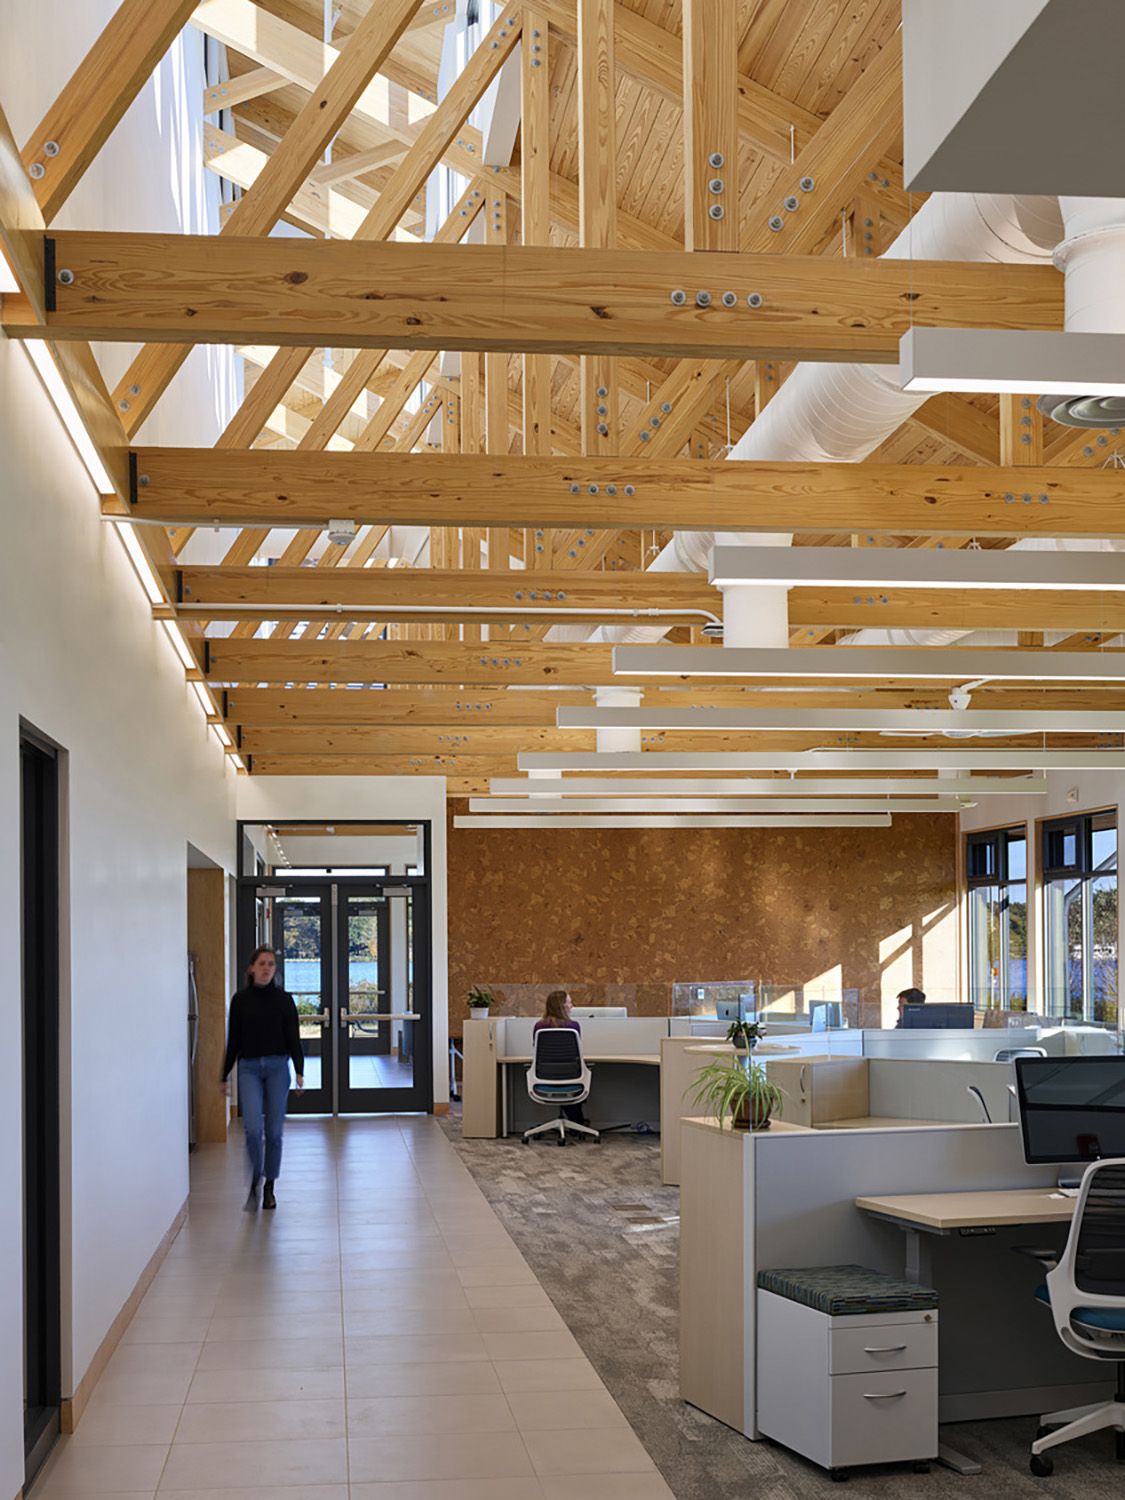 Biophilic materials and river vistas enrich the interior experience ©Tom Holdsworth